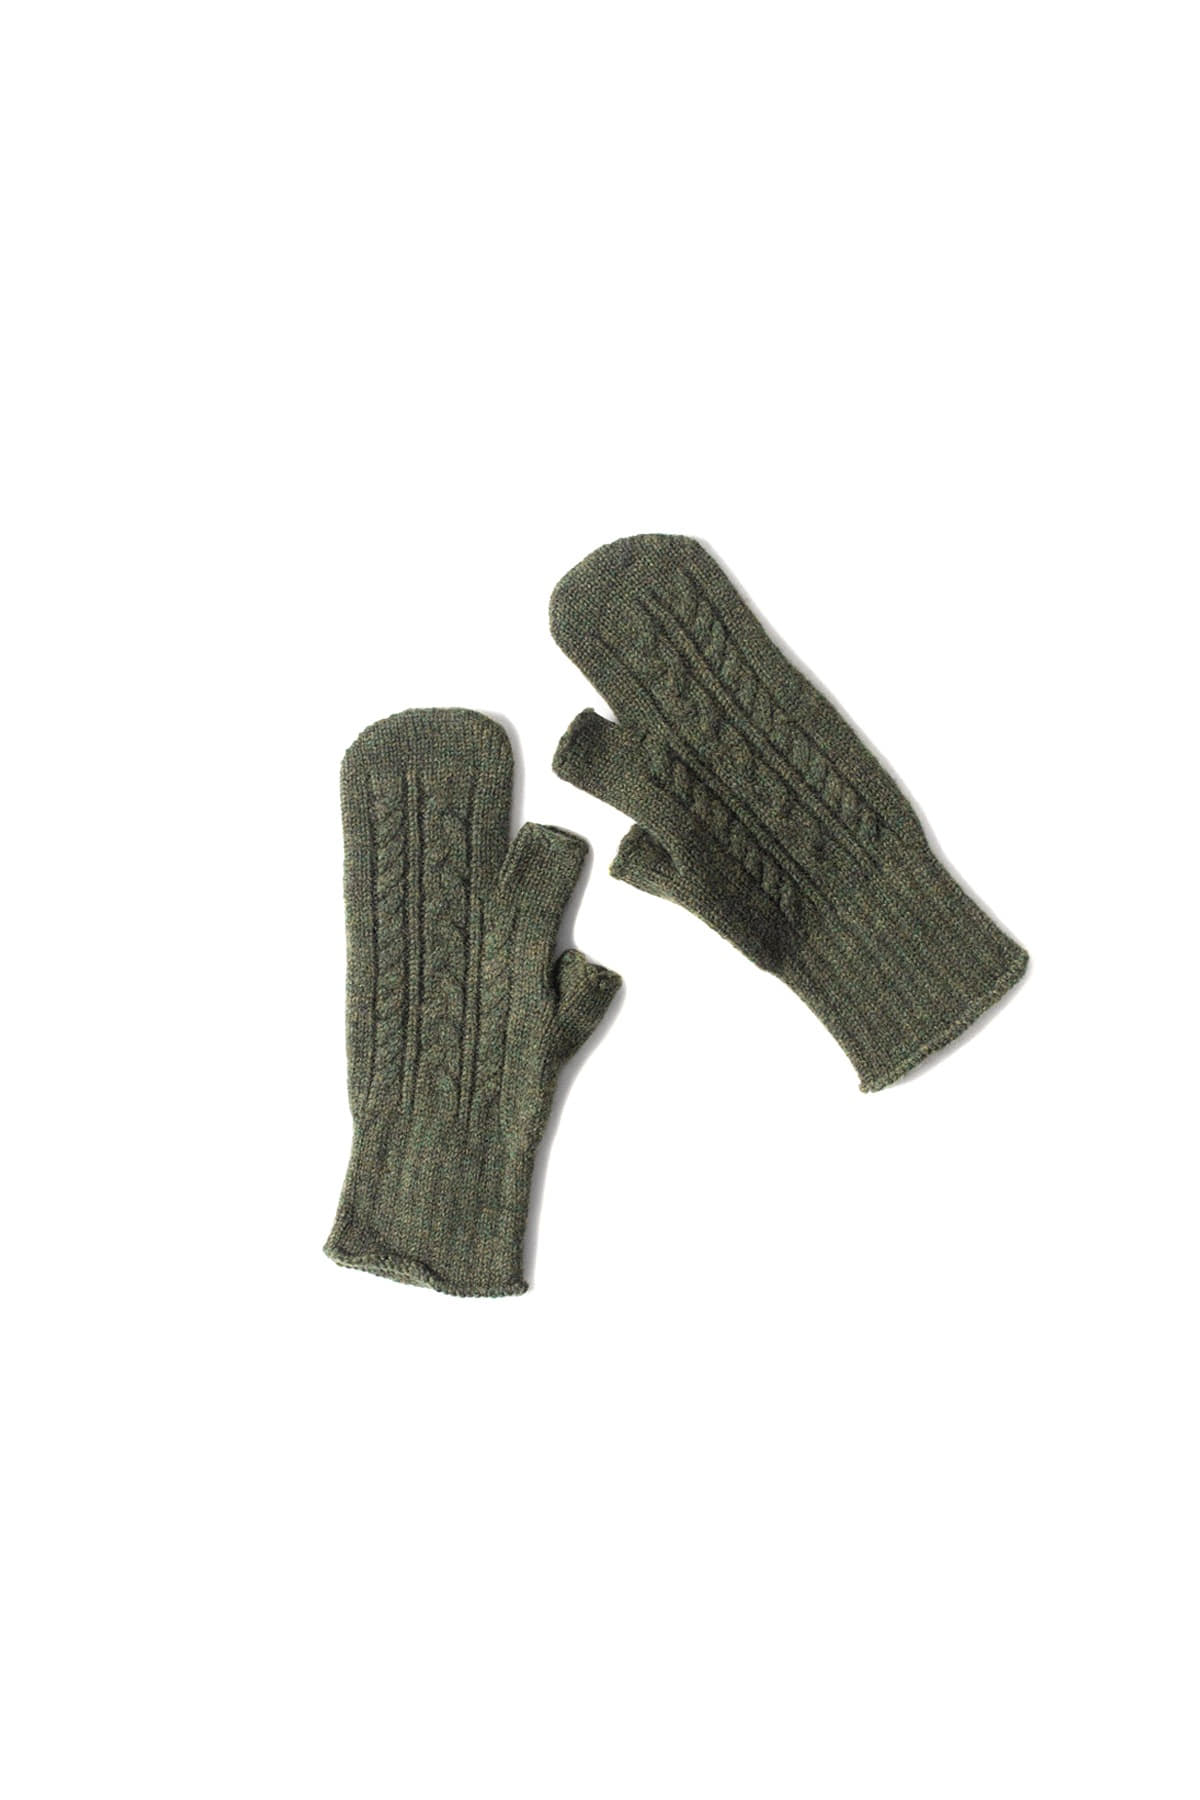 Eastlogue :  Rifle Gloves (Olive)